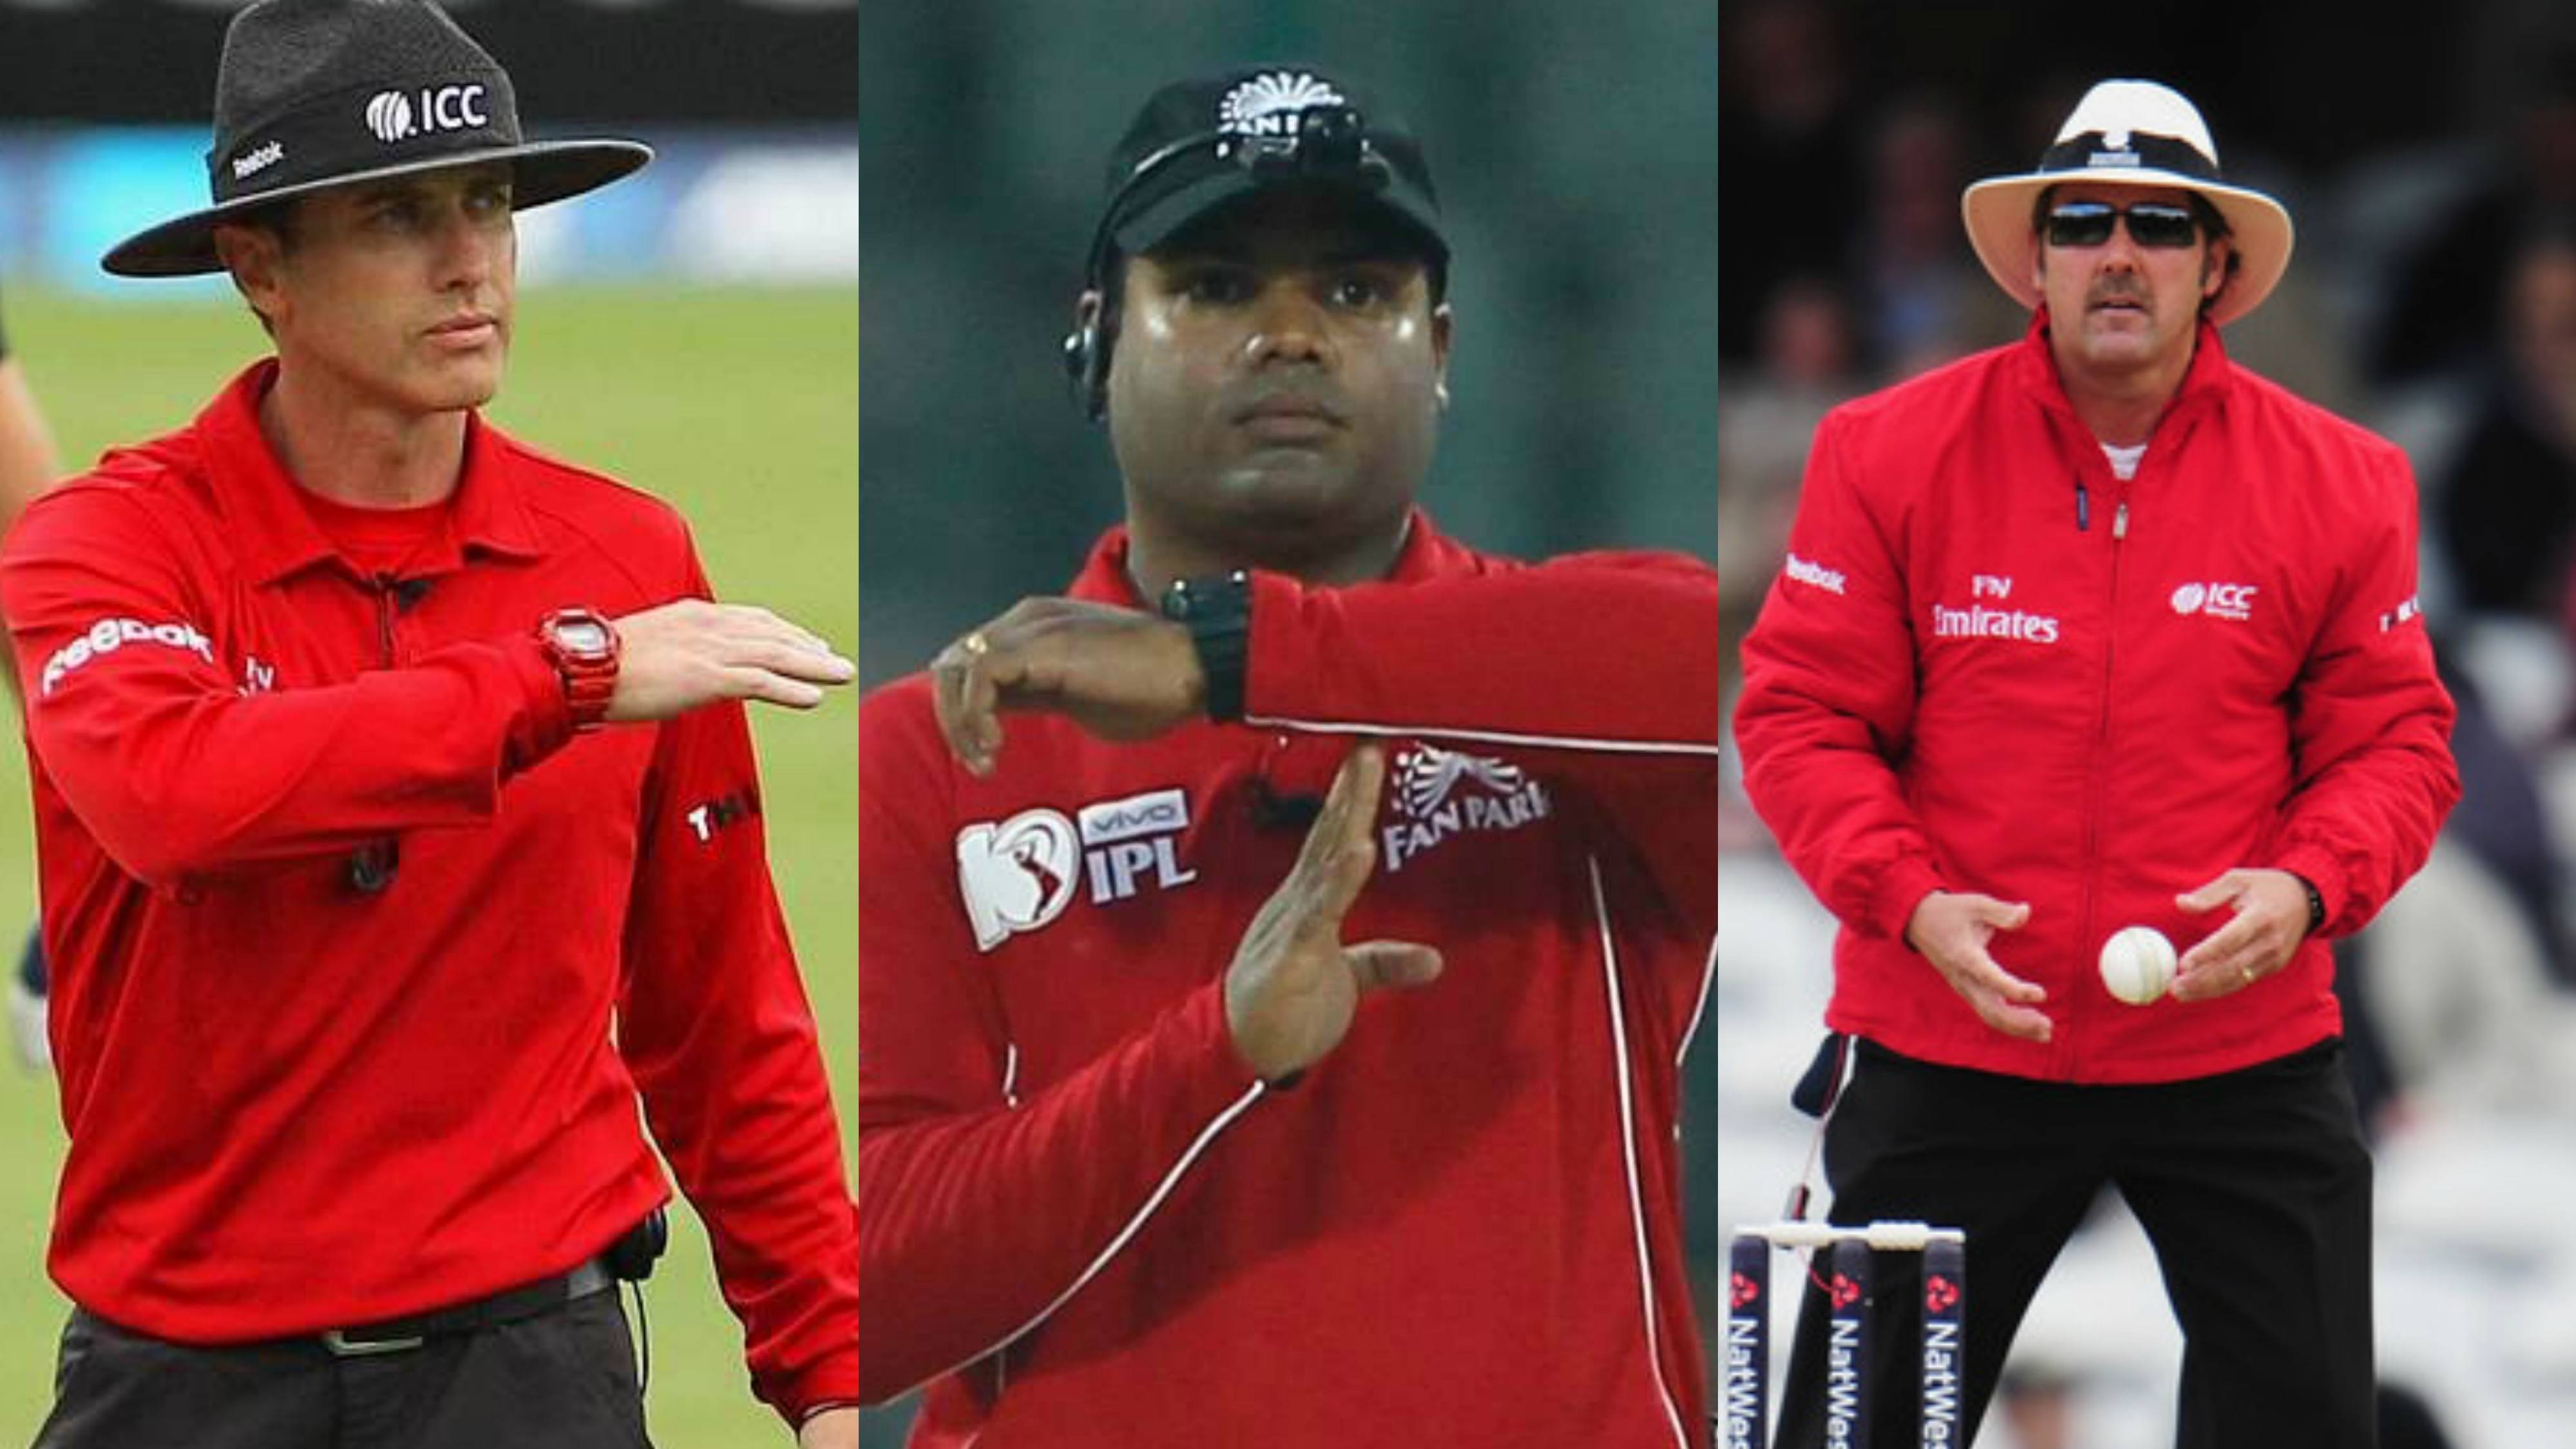 IPL 2020: Four umpires from ICC's Elite Panel to officiate in upcoming IPL 13